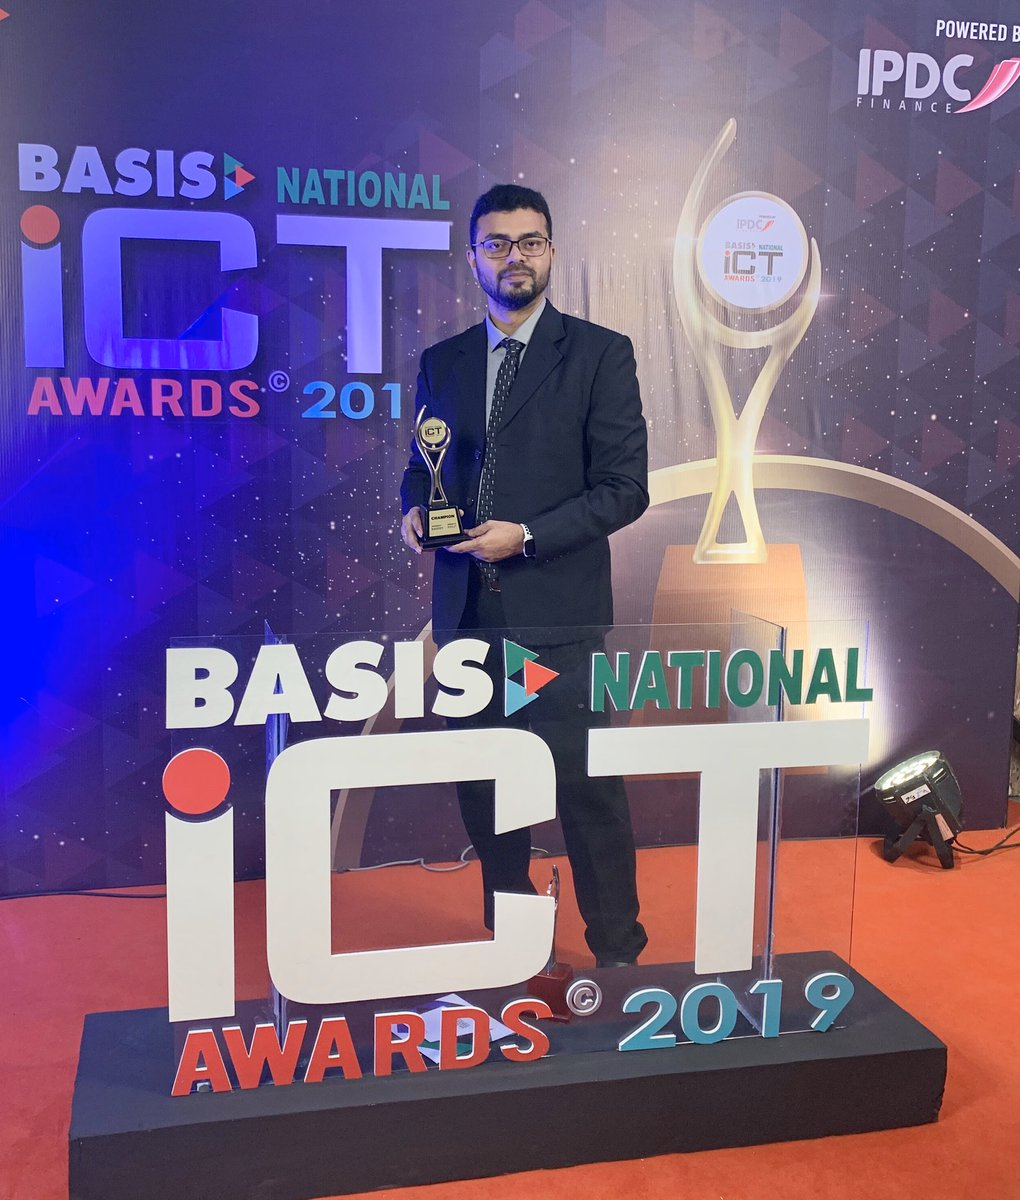 """test Twitter Media - https://t.co/bVCVp42yQn became Champion as """"Startup Of The Year"""", Cross Category: HR Solution in BASIS National ICT Awards 2019 ! We will be representing Bangladesh in #APICTA 2019 at Vietnam! Our @NotificationX_ also won as the 1st Runner-up in Marketing Solution Category! https://t.co/yOJ2tcRWlO"""